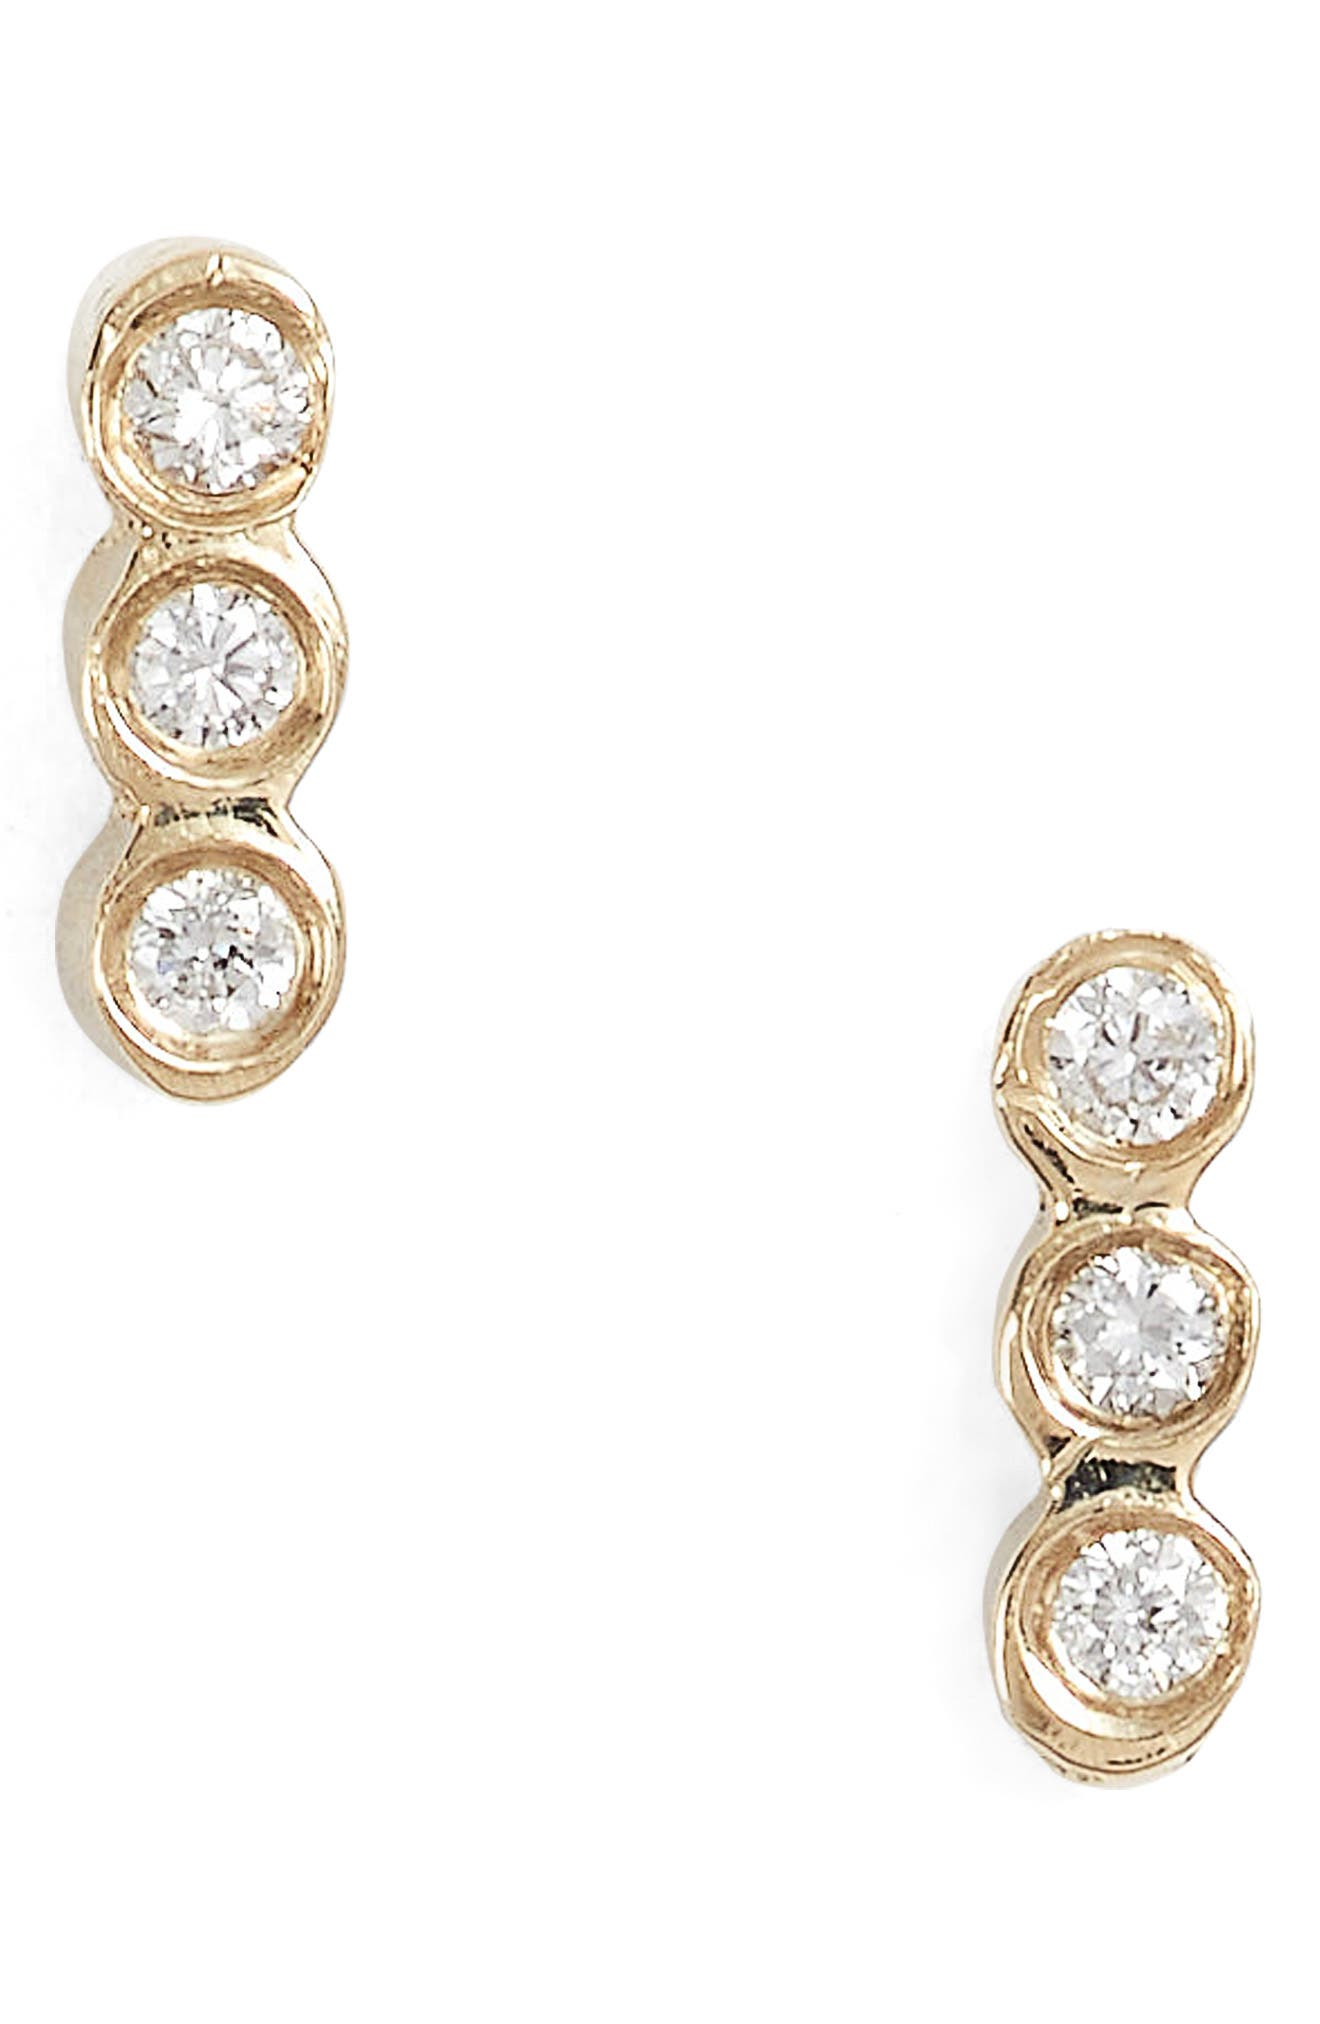 Diamond Bezel Bar Stud Earrings,                             Main thumbnail 1, color,                             YELLOW GOLD